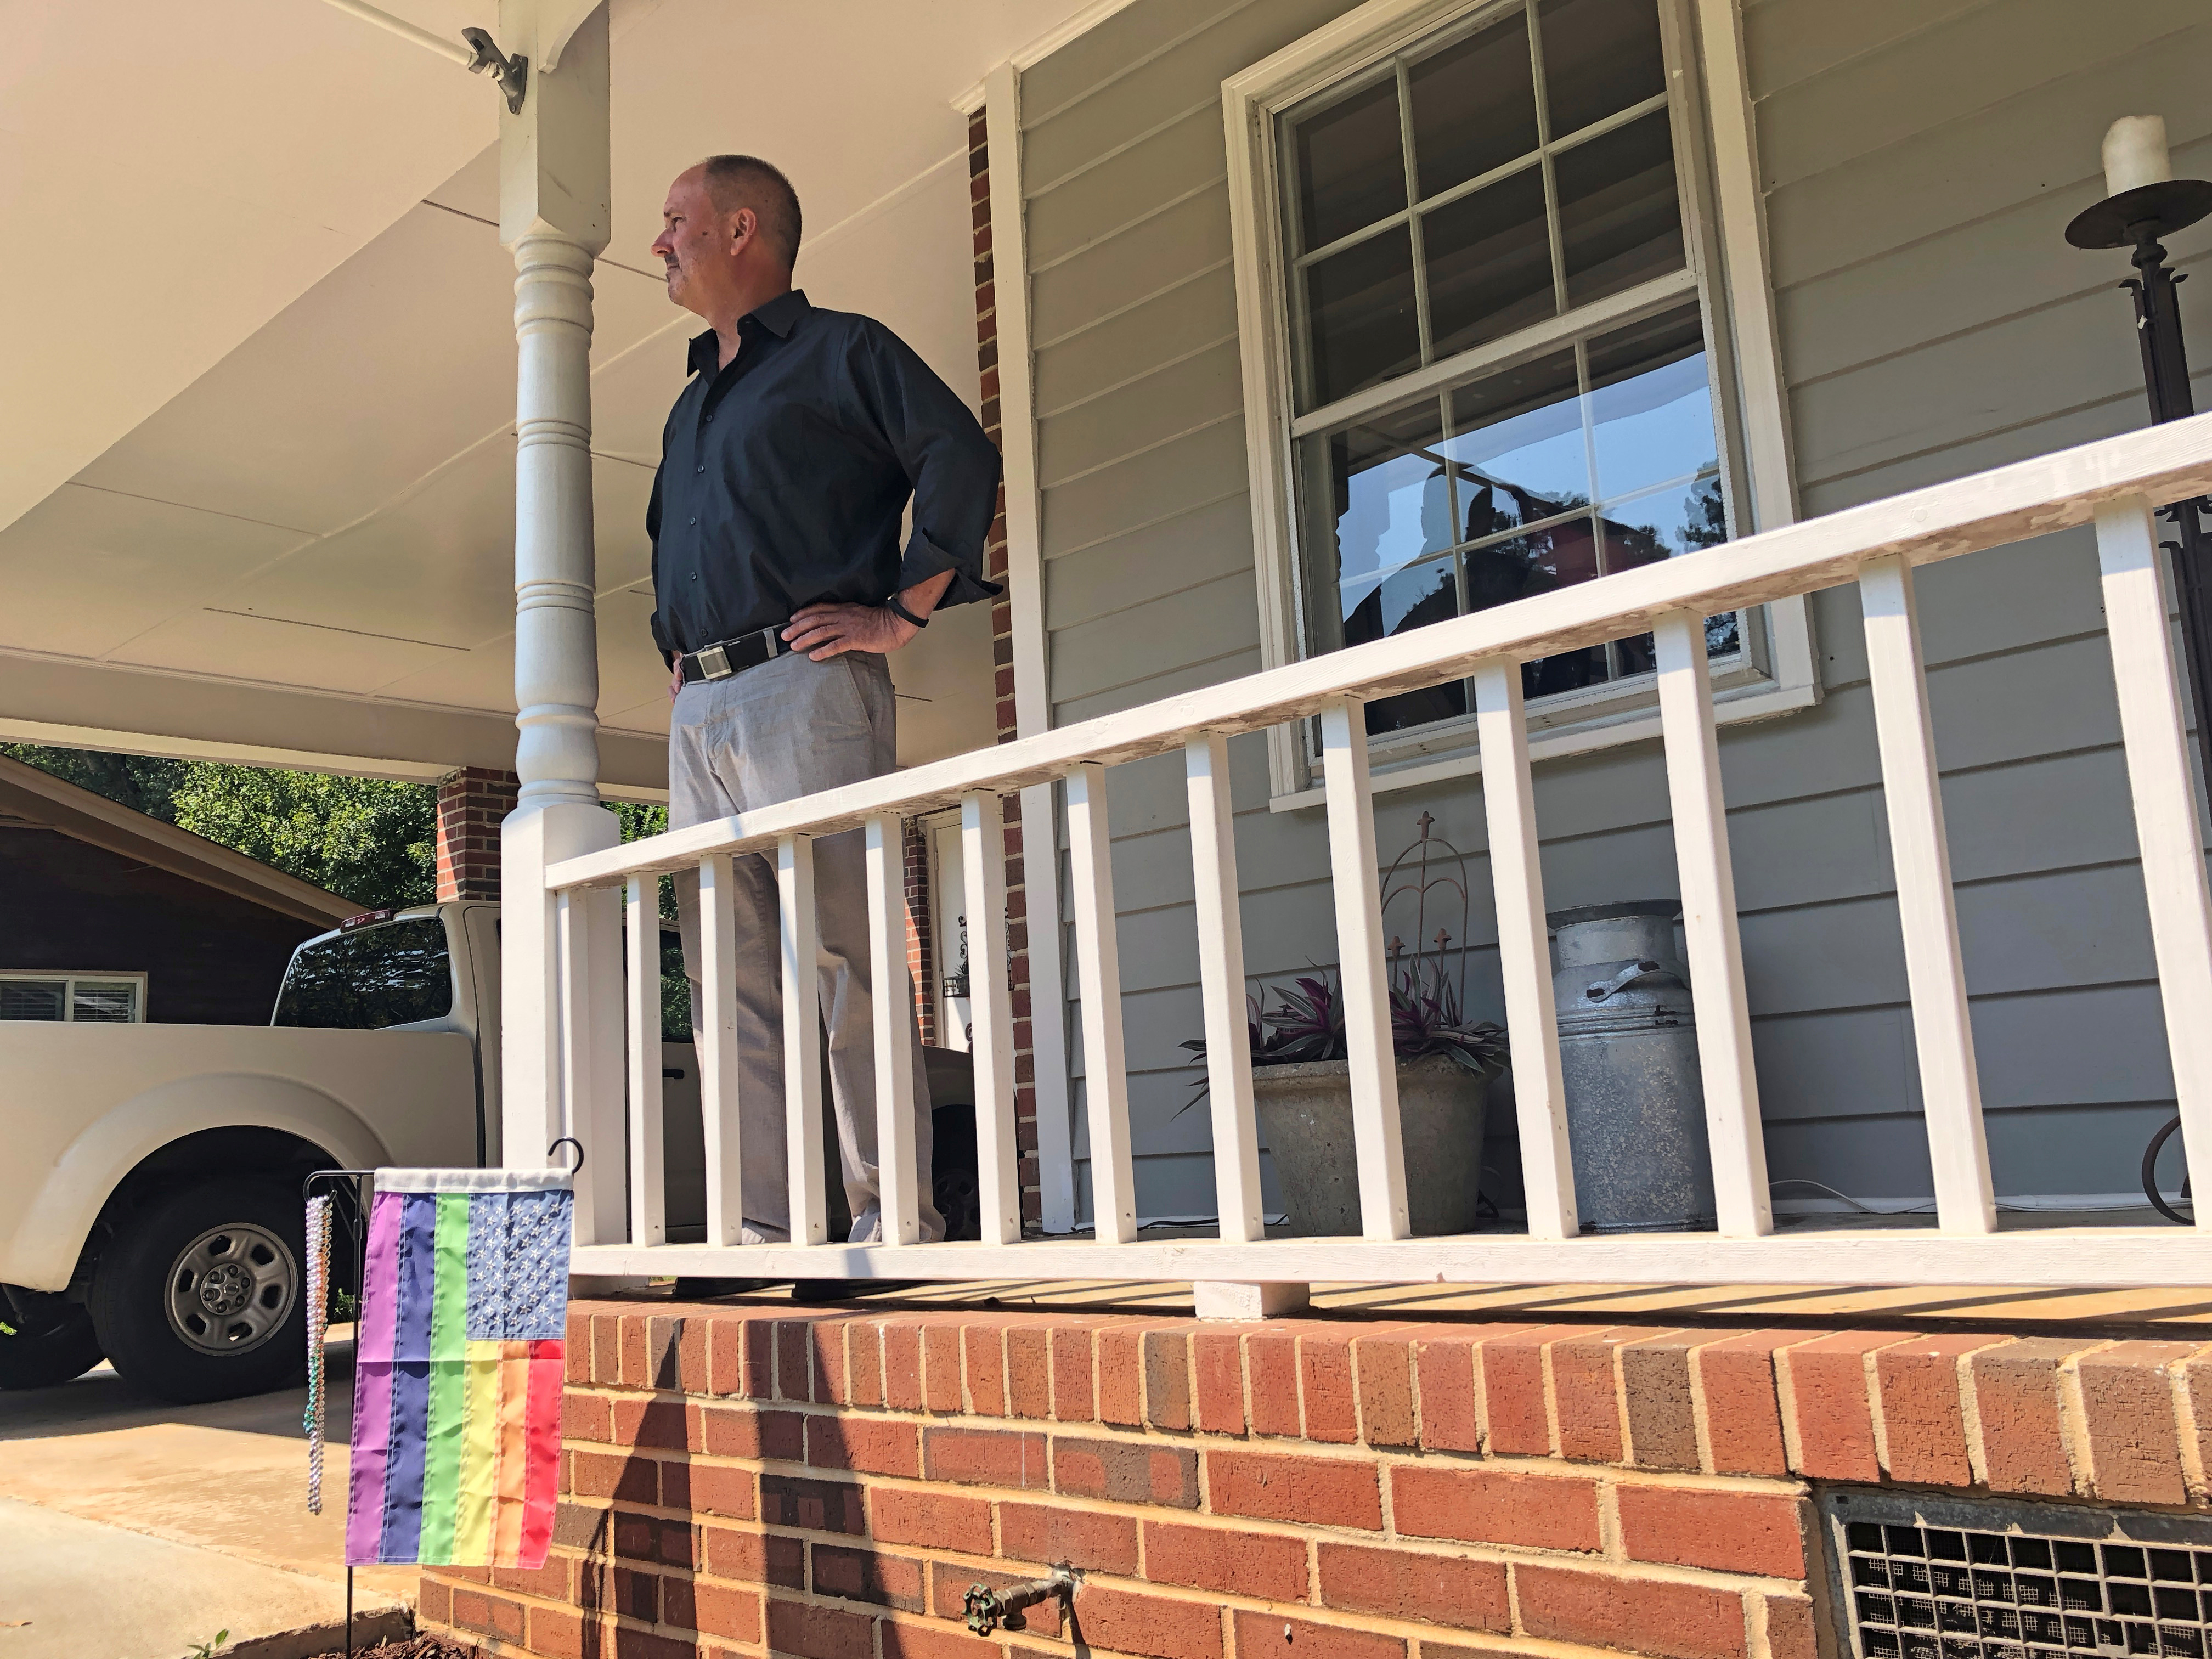 Georgia man fights for gay rights in U.S. Supreme Court 'Hotlanta' case